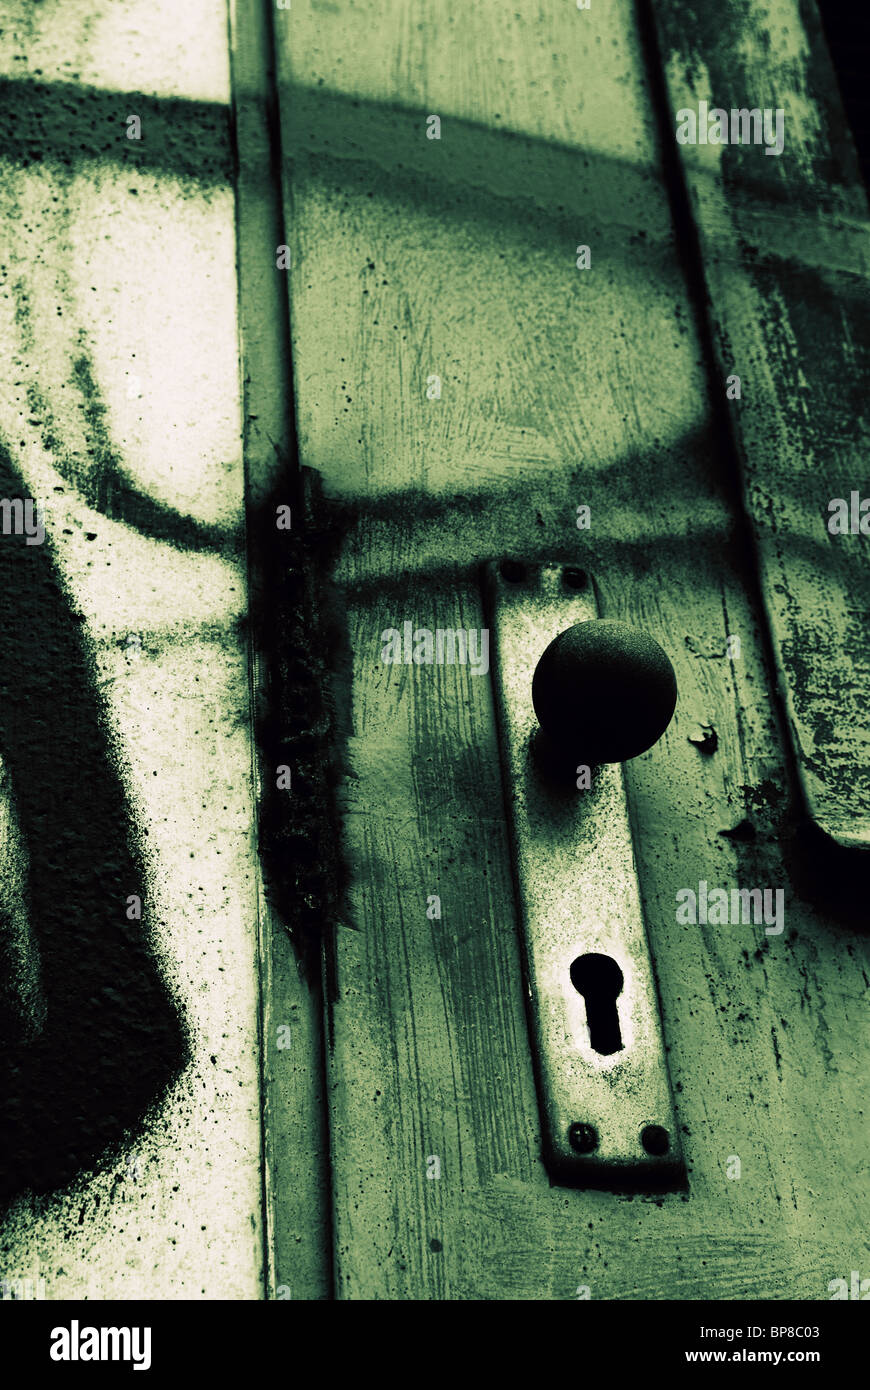 Poignée de porte minable Photo Stock